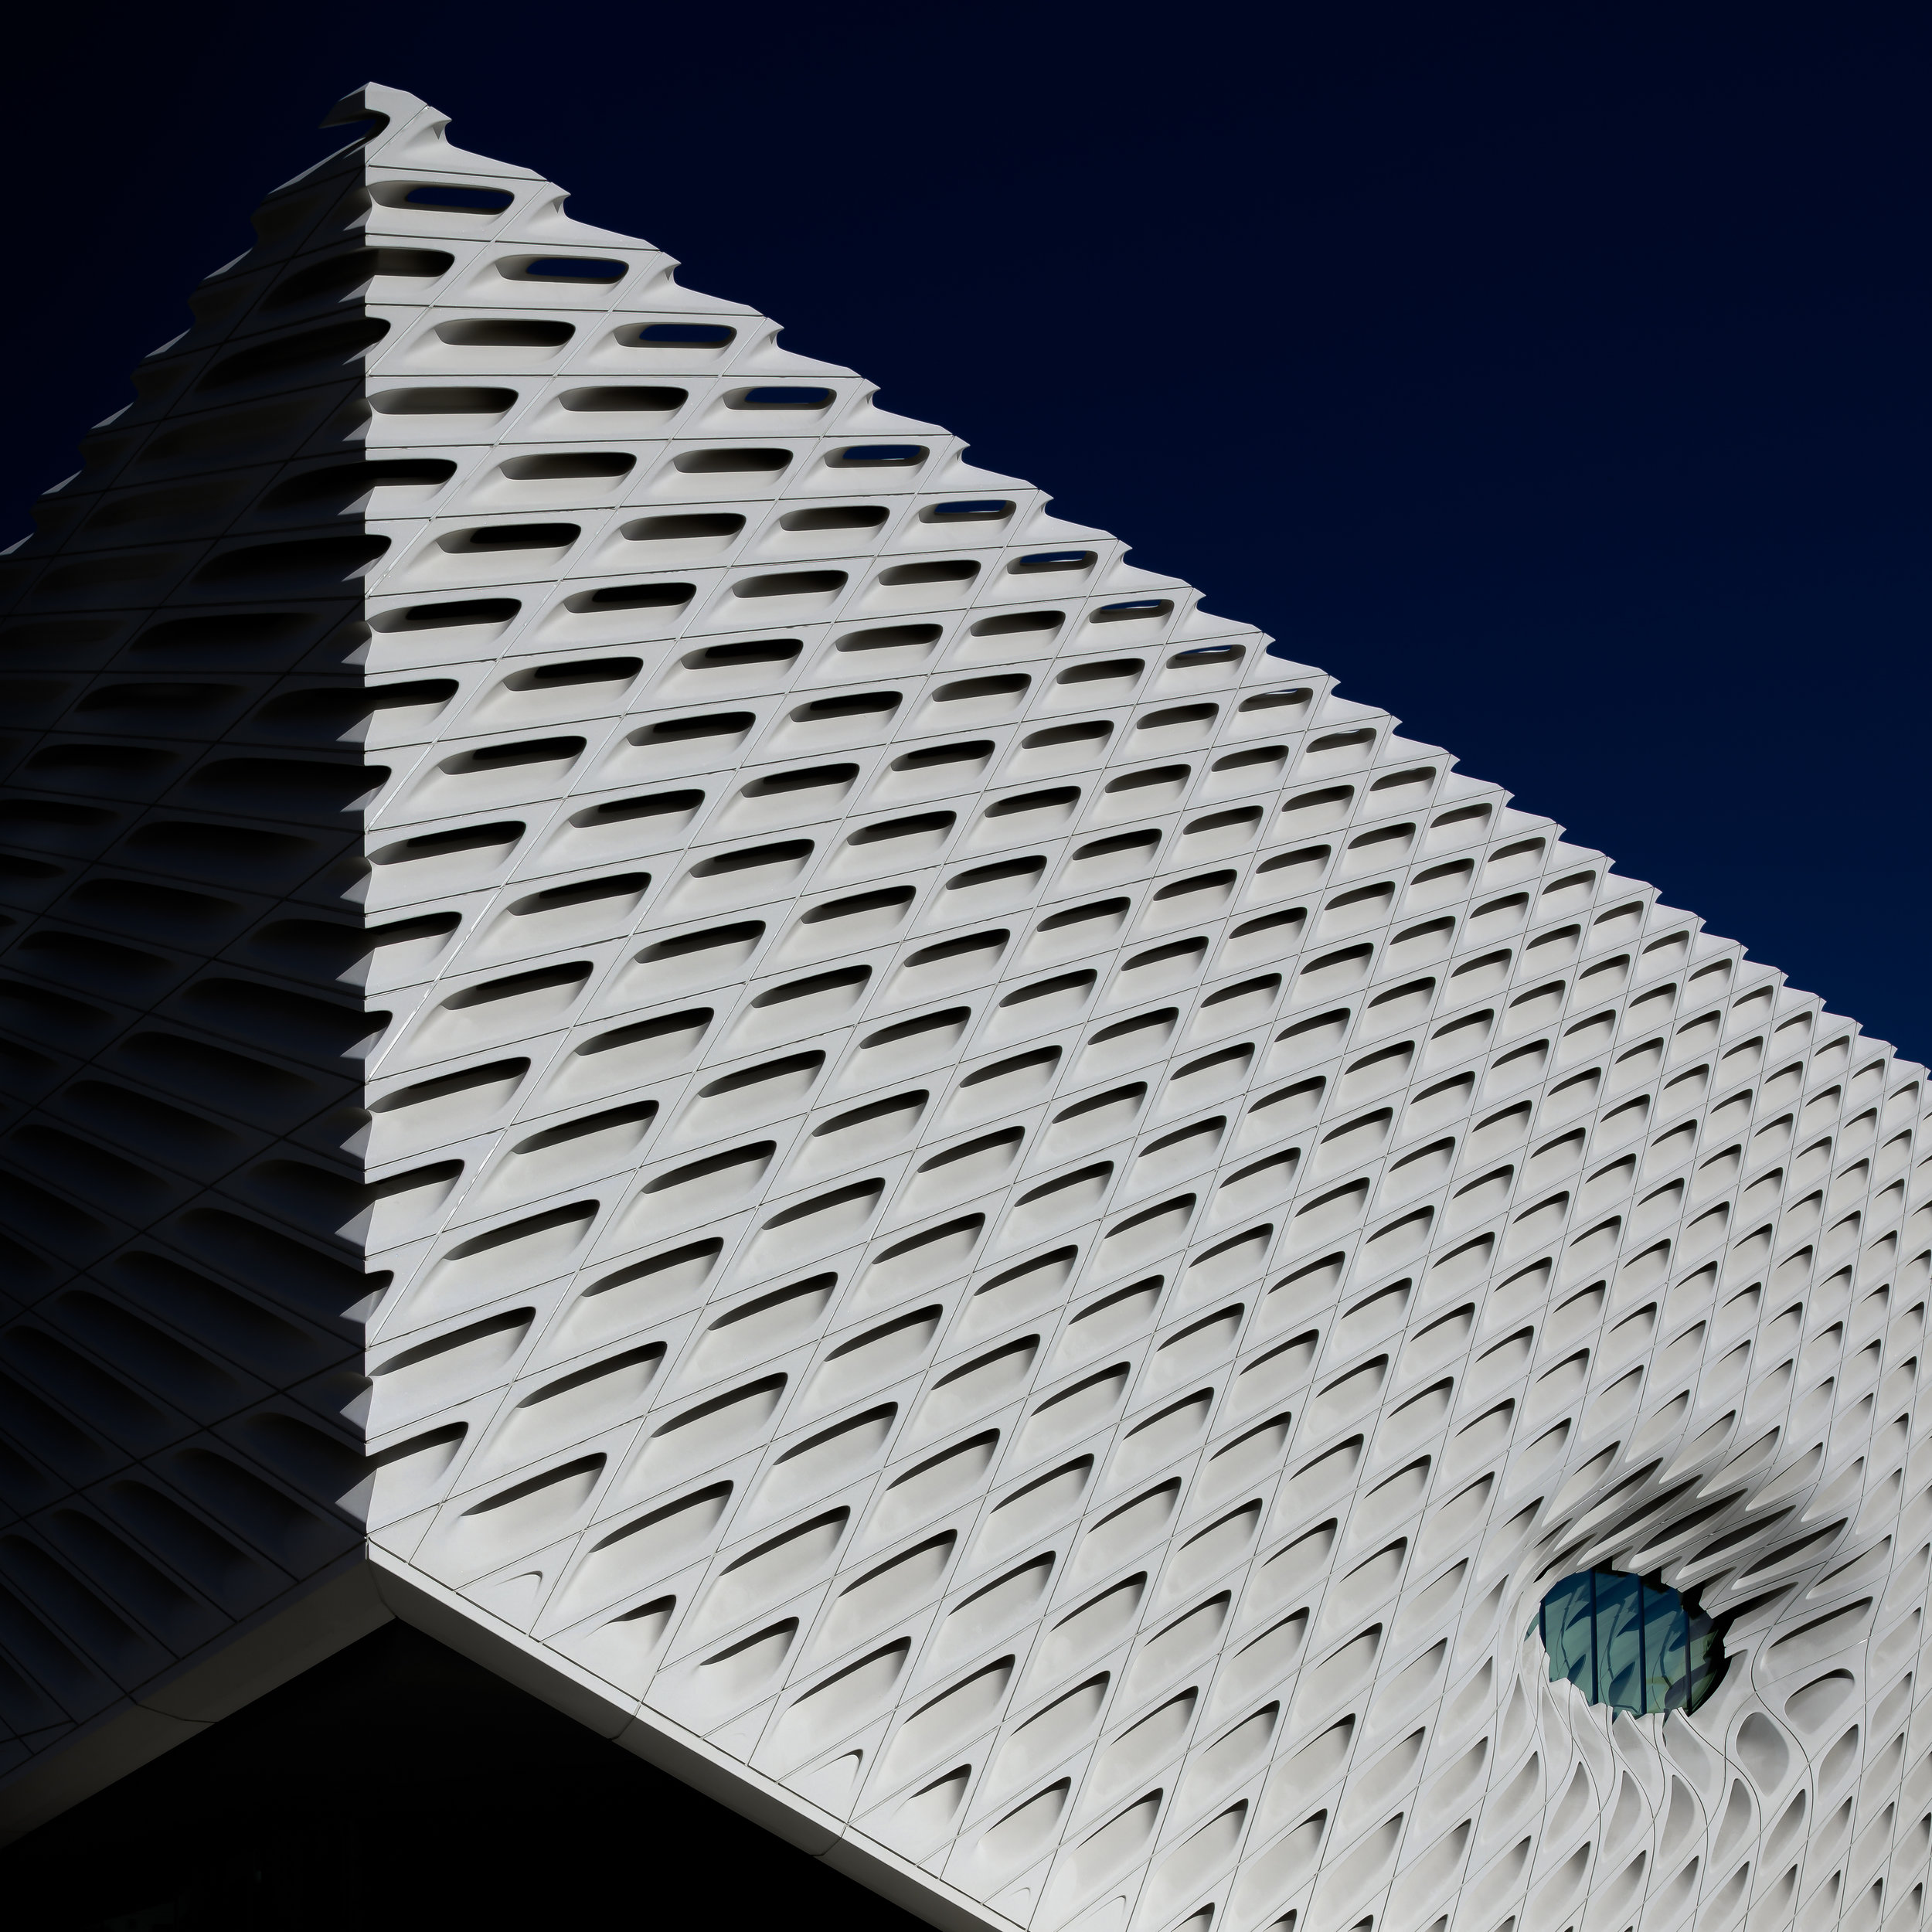 The Broad Museum Los Angeles